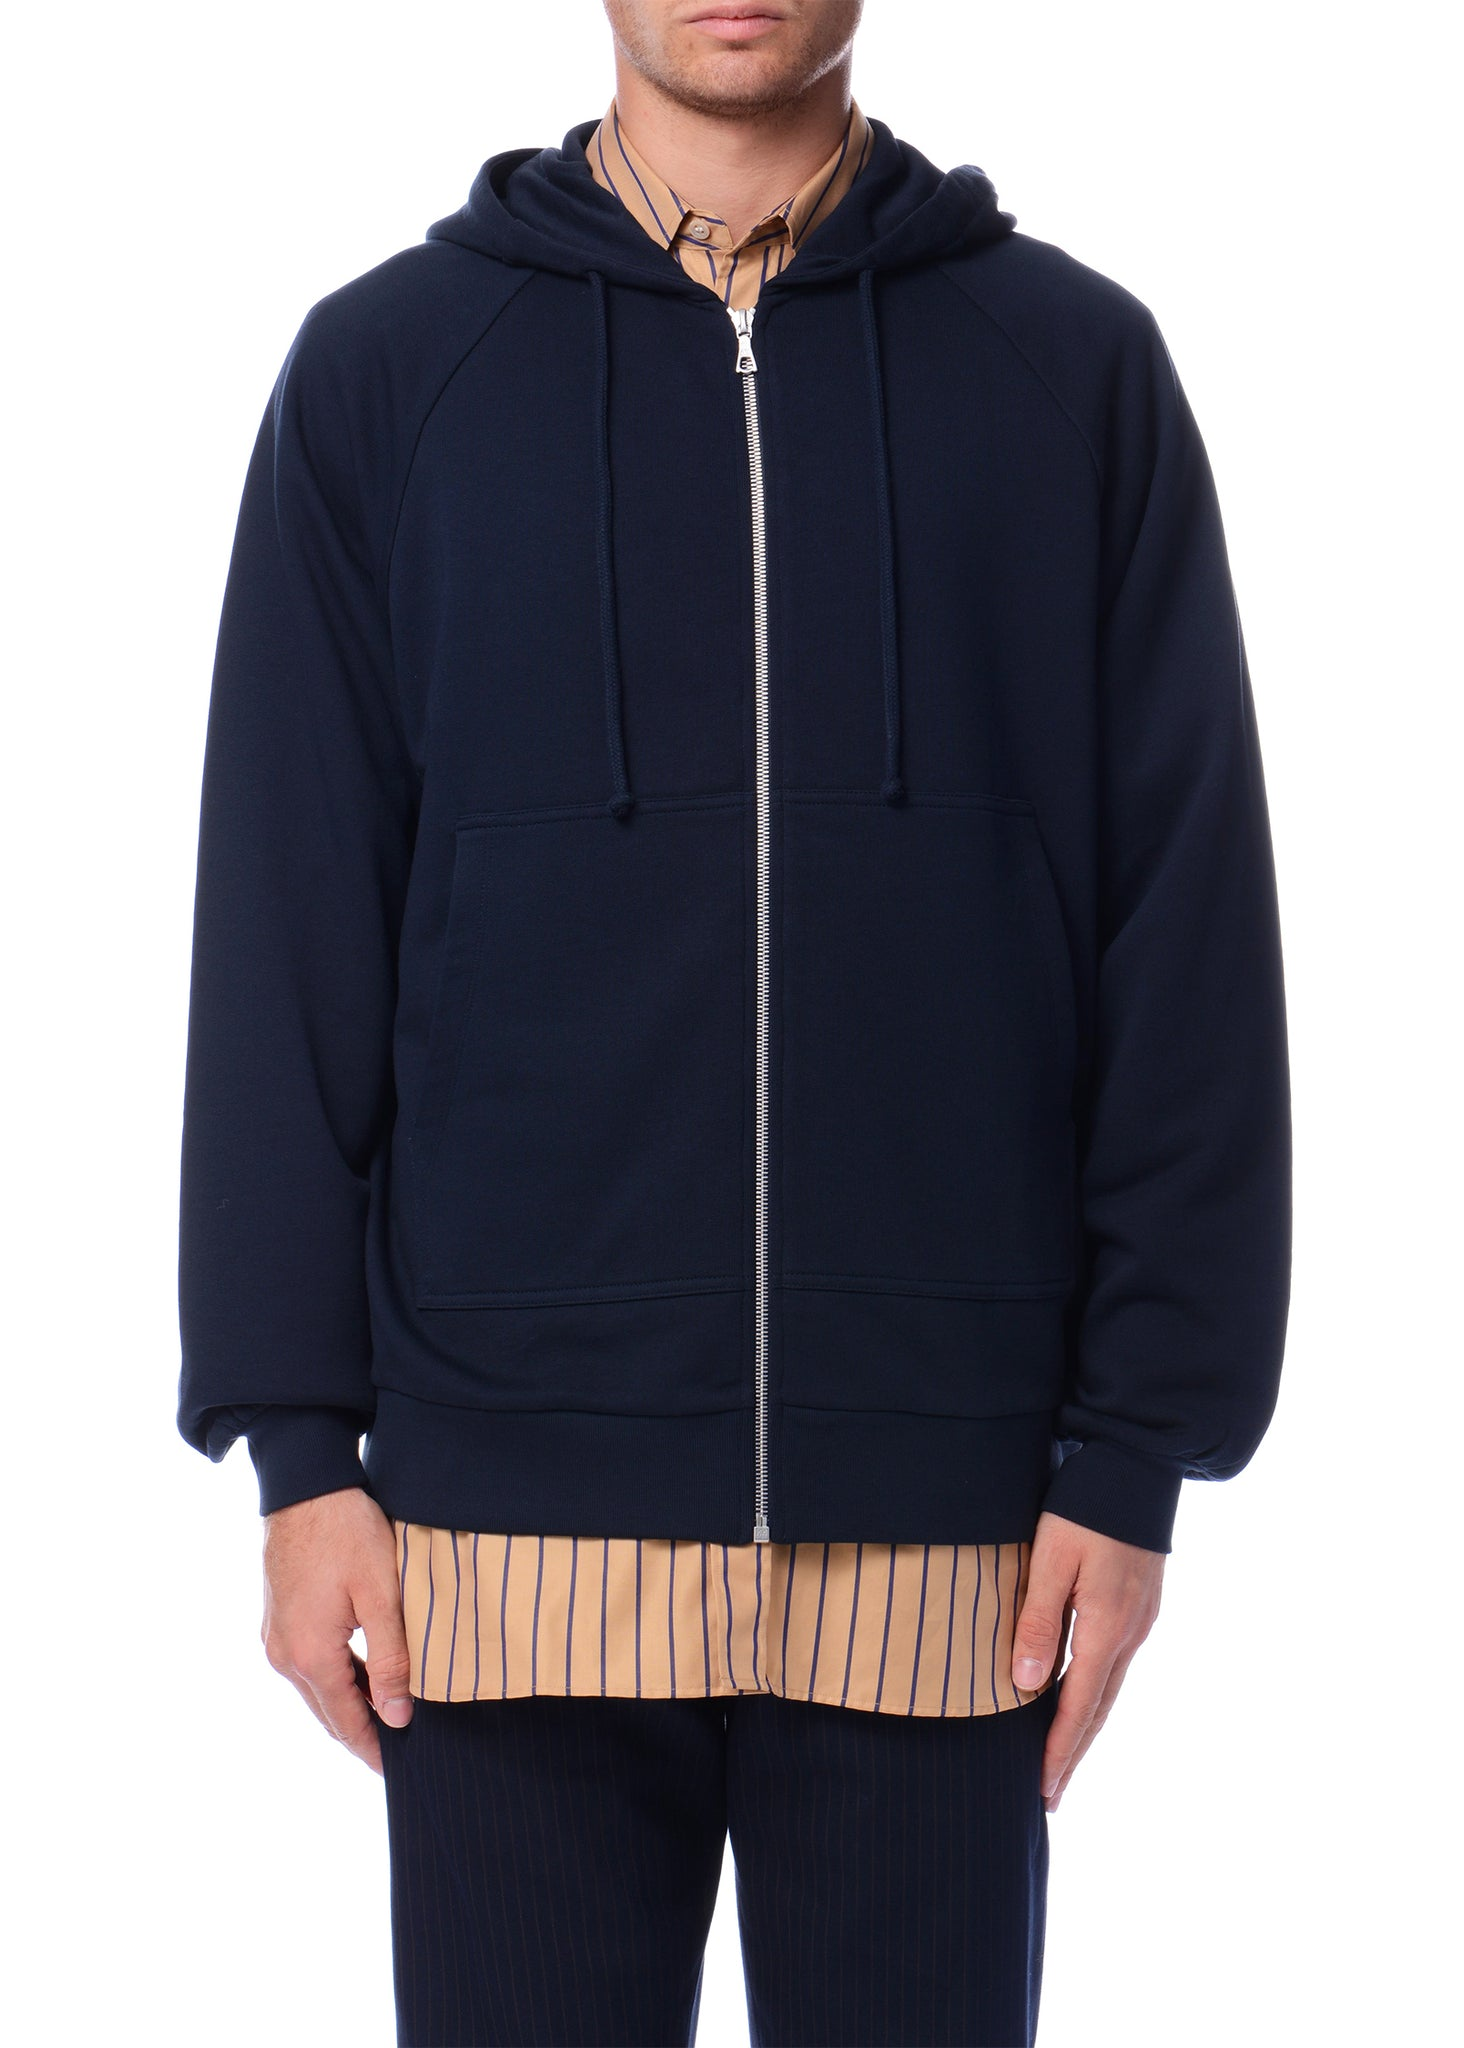 Sweat à capuche bleu marine à capuche fendue|Navy Hoodie with Split Hood